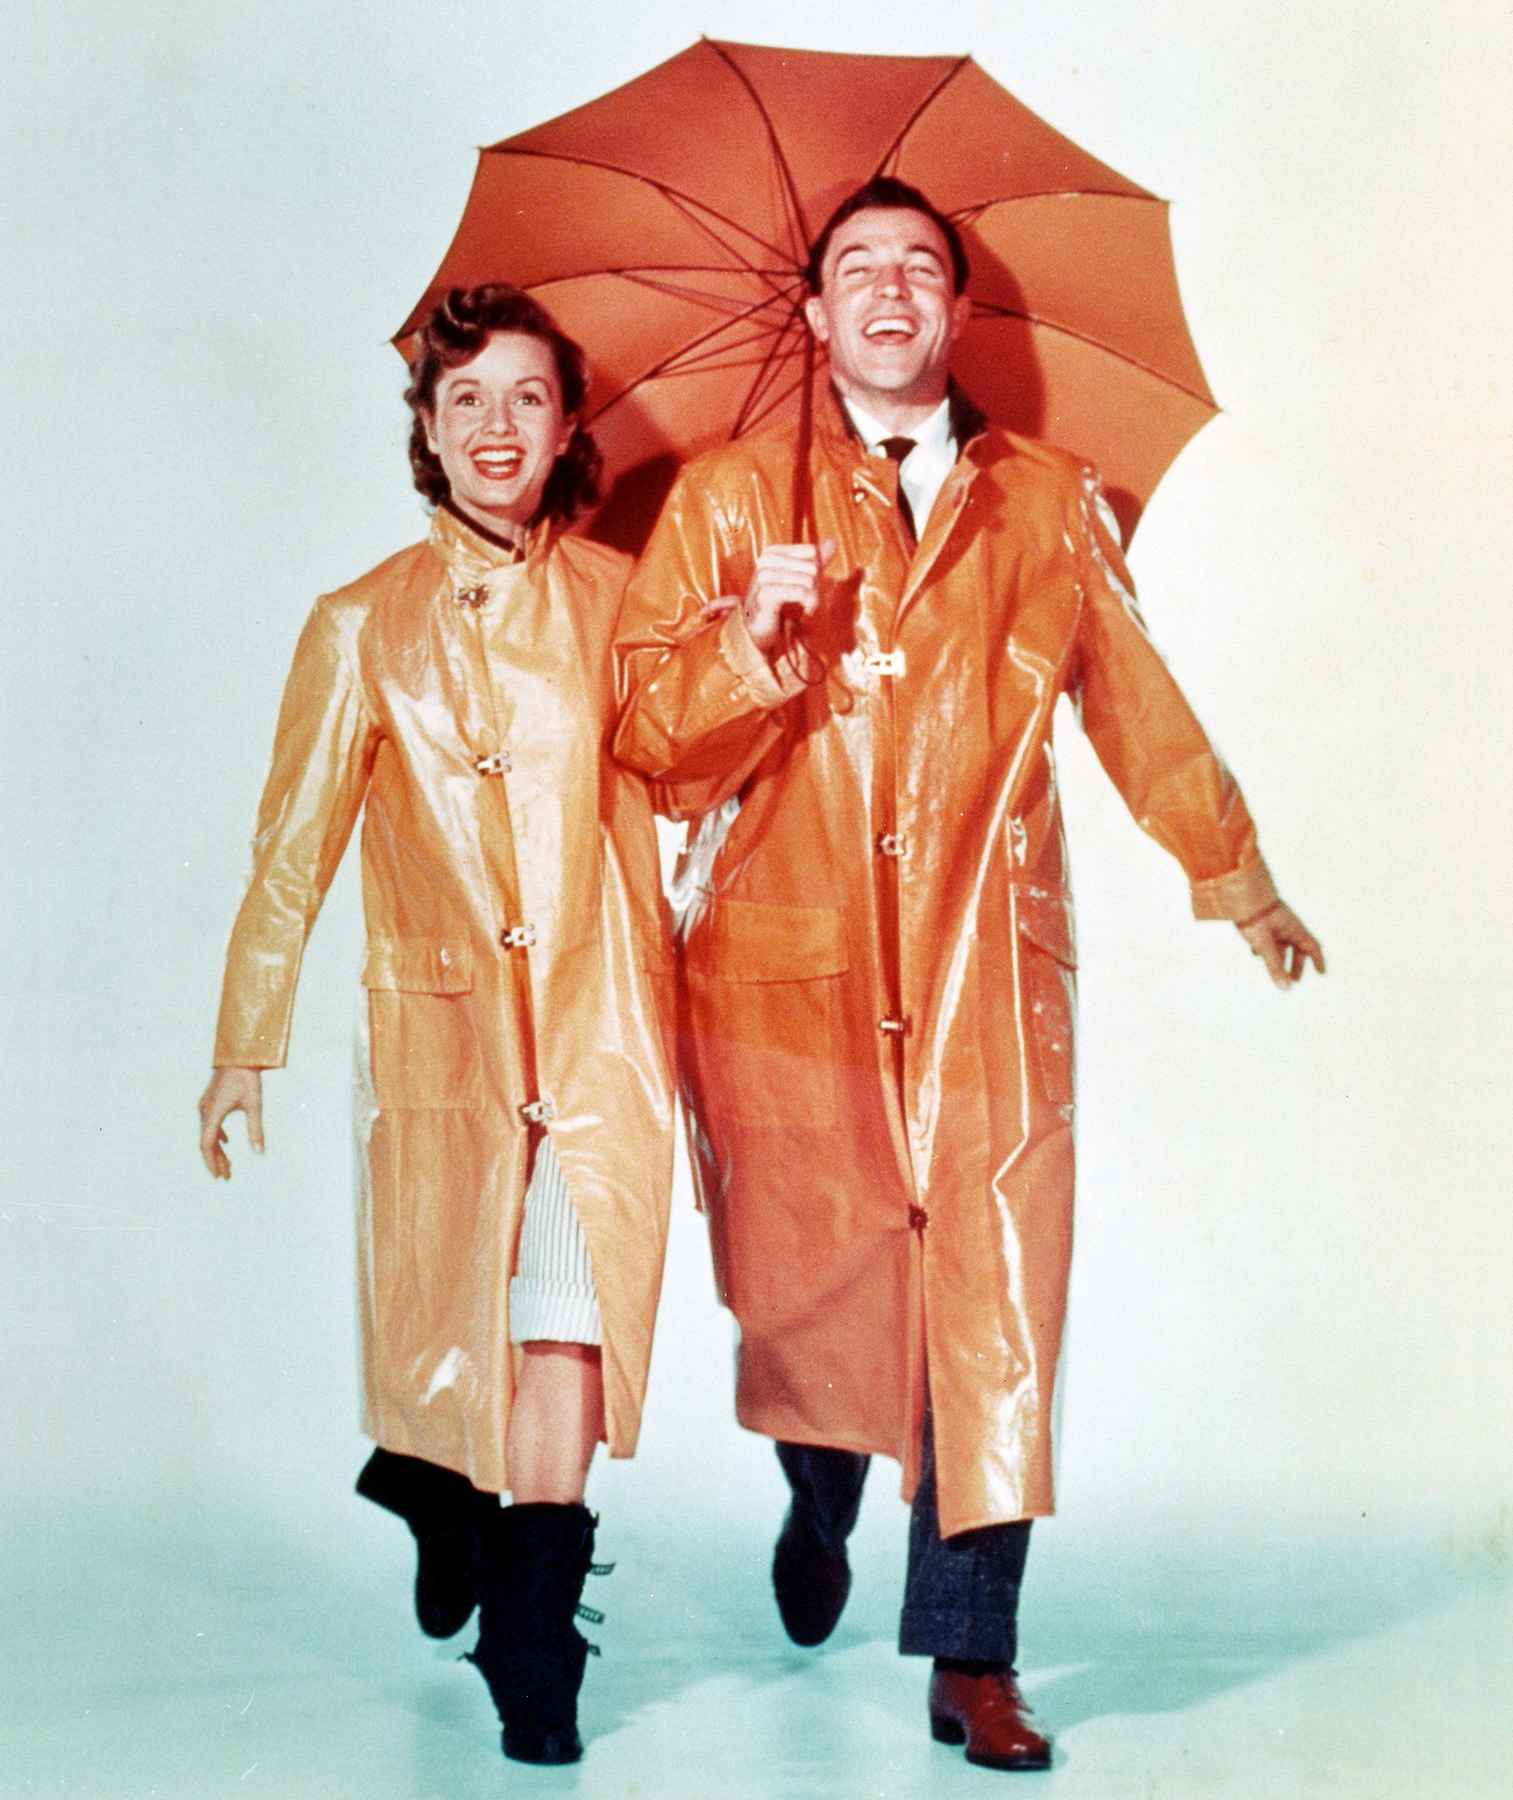 Gene Kelly and Debbie Reynolds in Singin' In the Rain